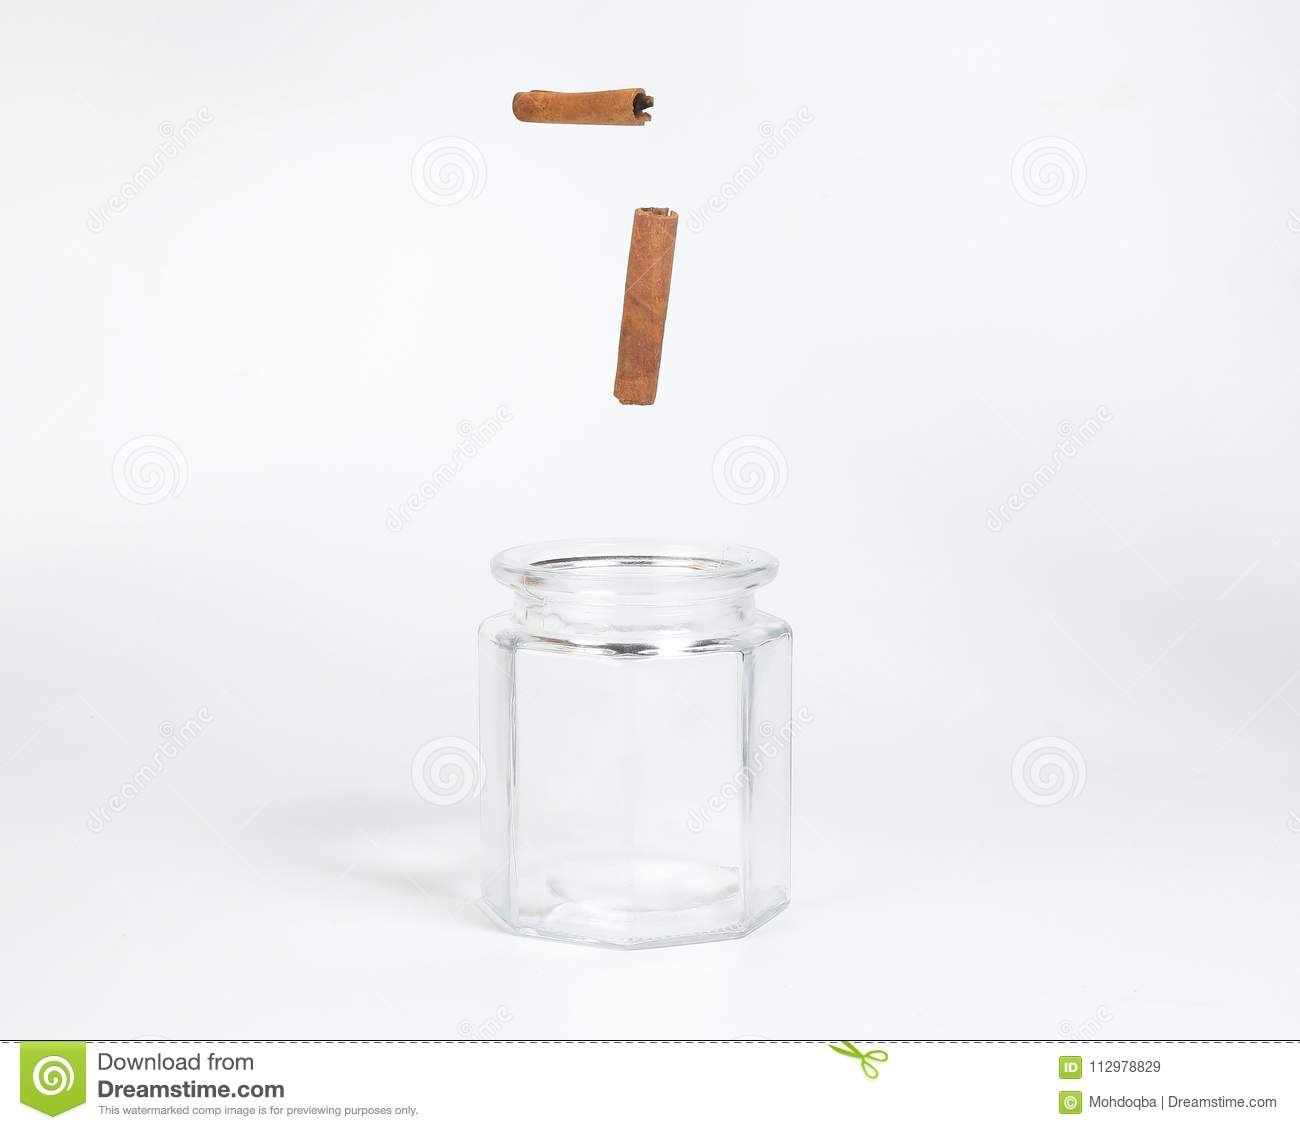 Cinnamon in a glass jar